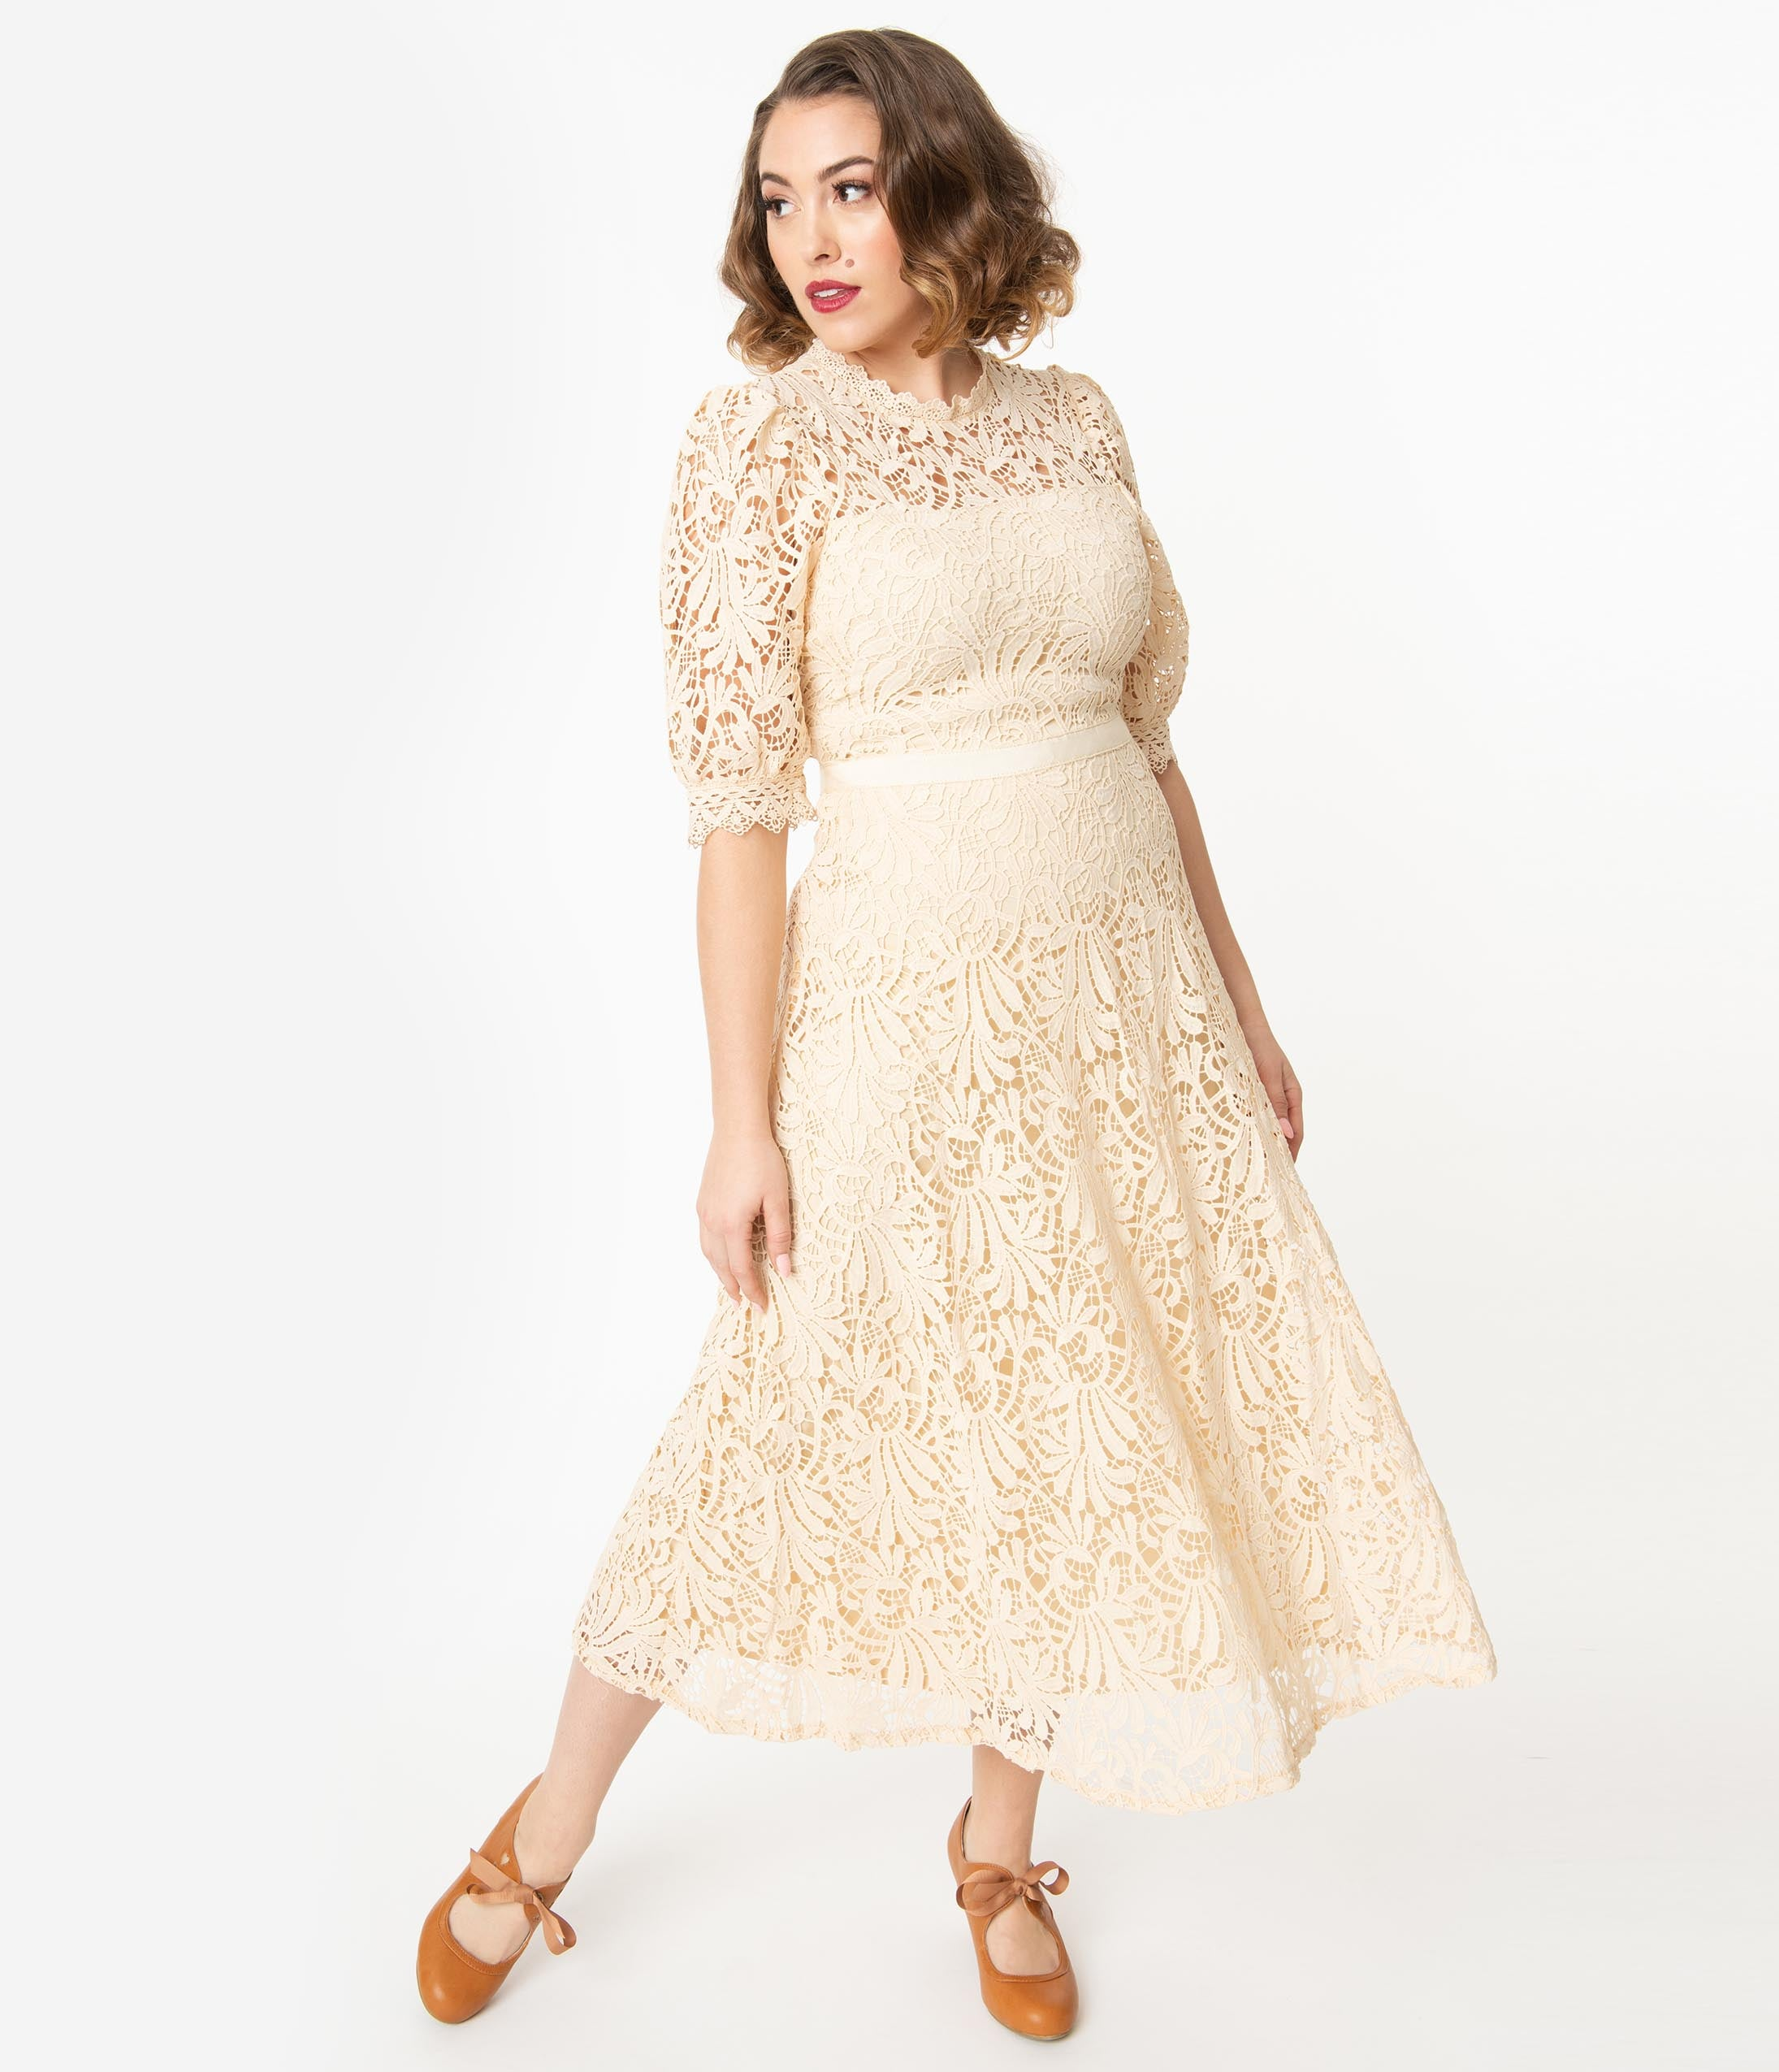 500 Vintage Style Dresses for Sale | Vintage Inspired Dresses 1940S Style Cream Lace Midi Dress $98.00 AT vintagedancer.com